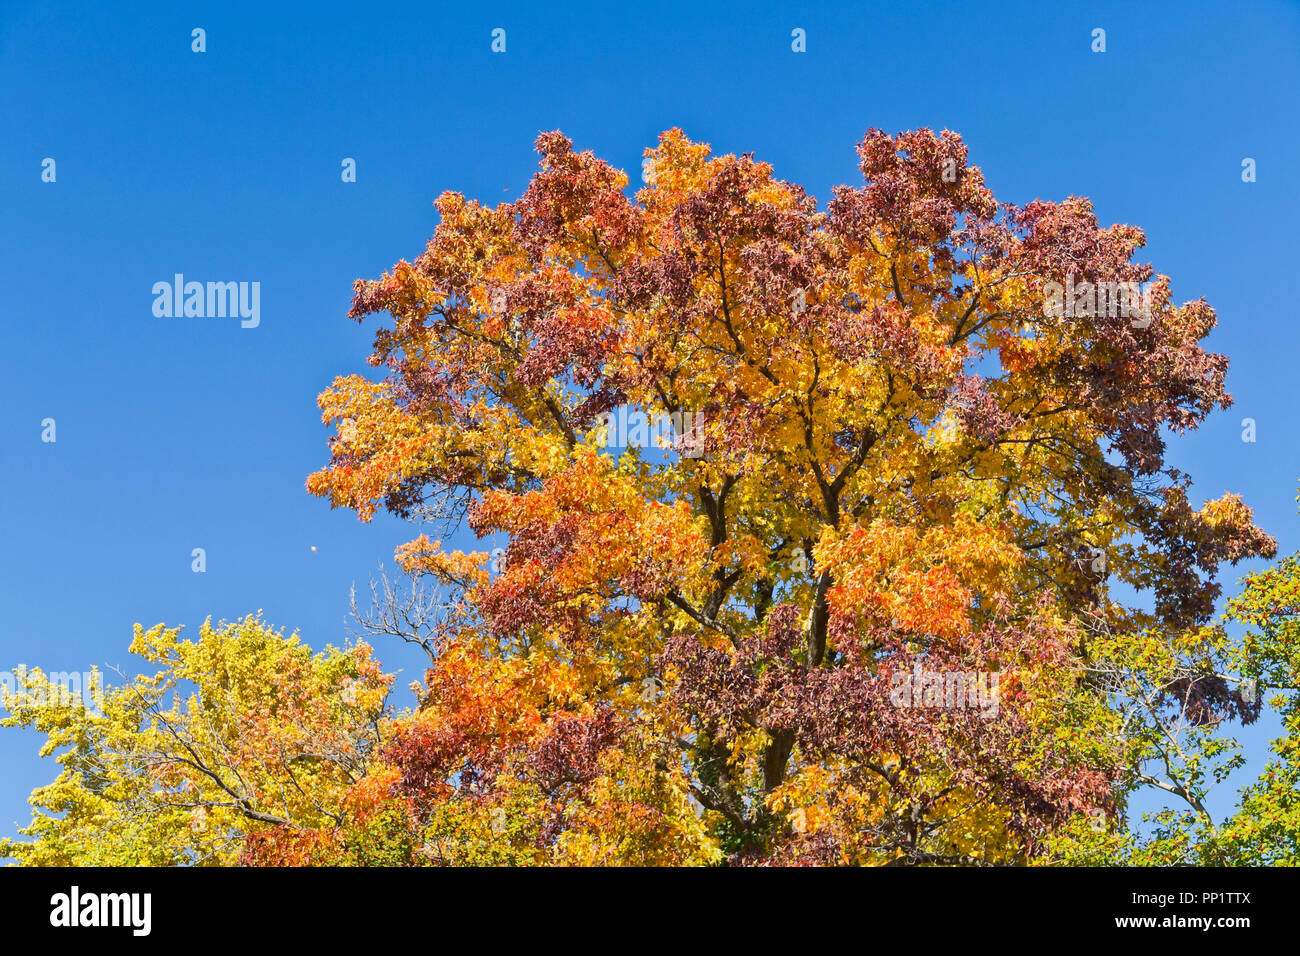 A sweetgum tree in a St. Louis park proudly displays its spectrum of majestic autumn colors: red, orange, yellow, green, and purple. - Stock Image